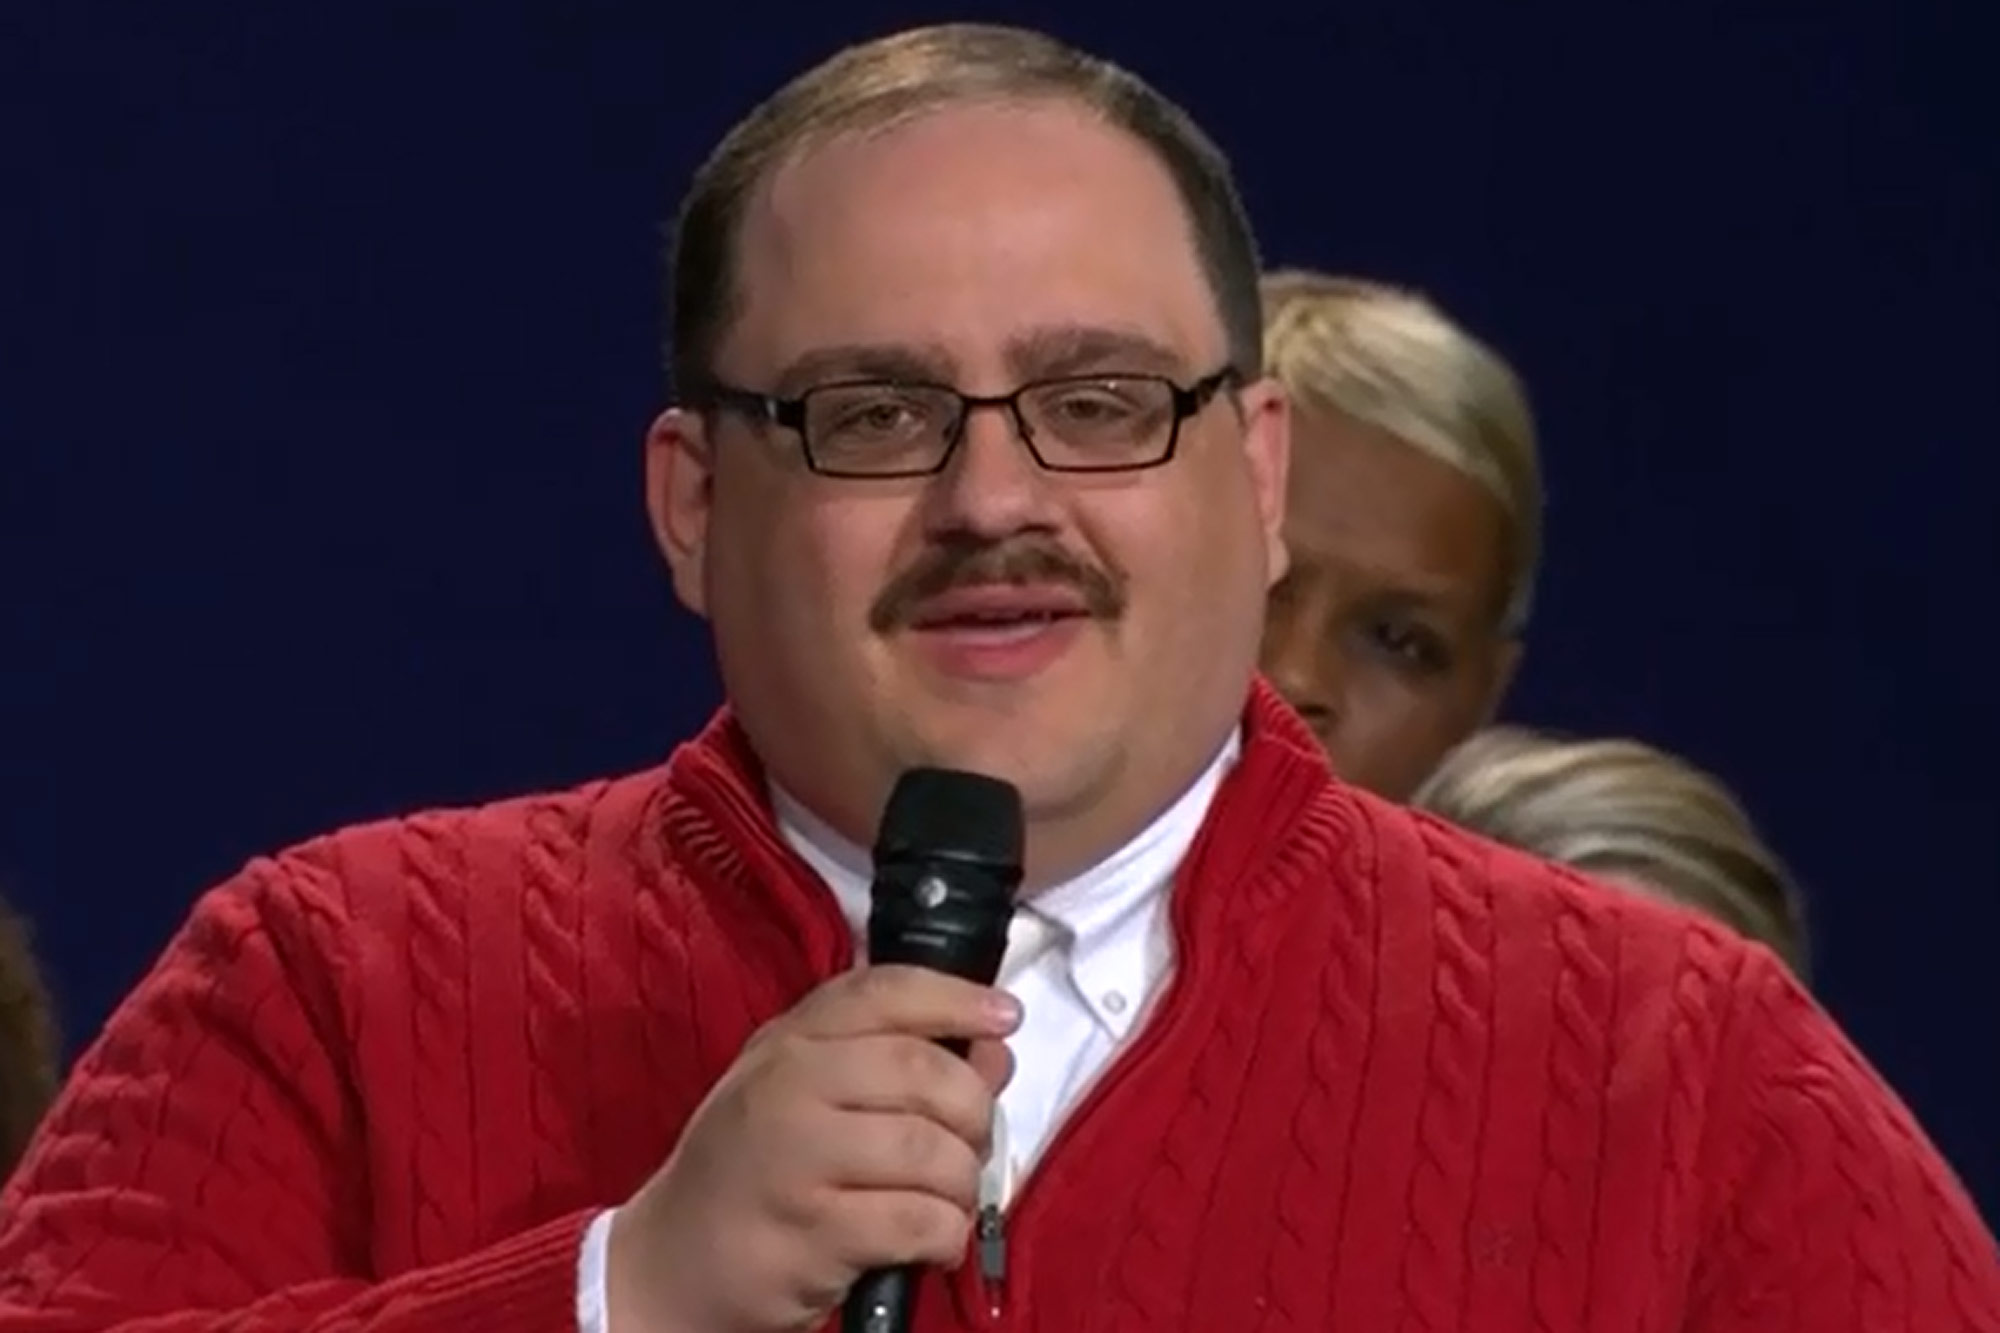 "http://edition.cnn.com/2016/10/10/politics/debate-ken-bone-staring-man-trnd/ Kenneth Bone asks Donald Trump and Hillary Clinton, ""What steps will your energy policy take to meet our energy needs while at the same time remaining environmentally friendly and minimizing job layoffs?"""